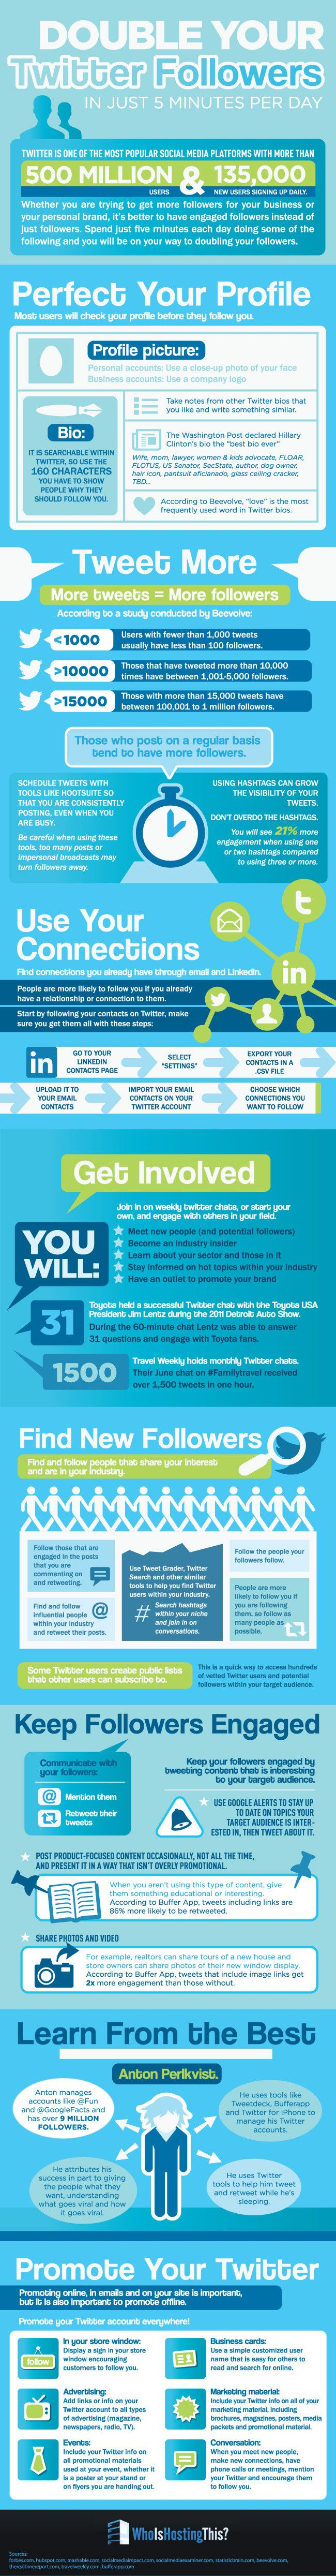 Double Twitter Followers Organically In Just 5 Minutes A Day [Infographic] some sensible straightforward tips here!